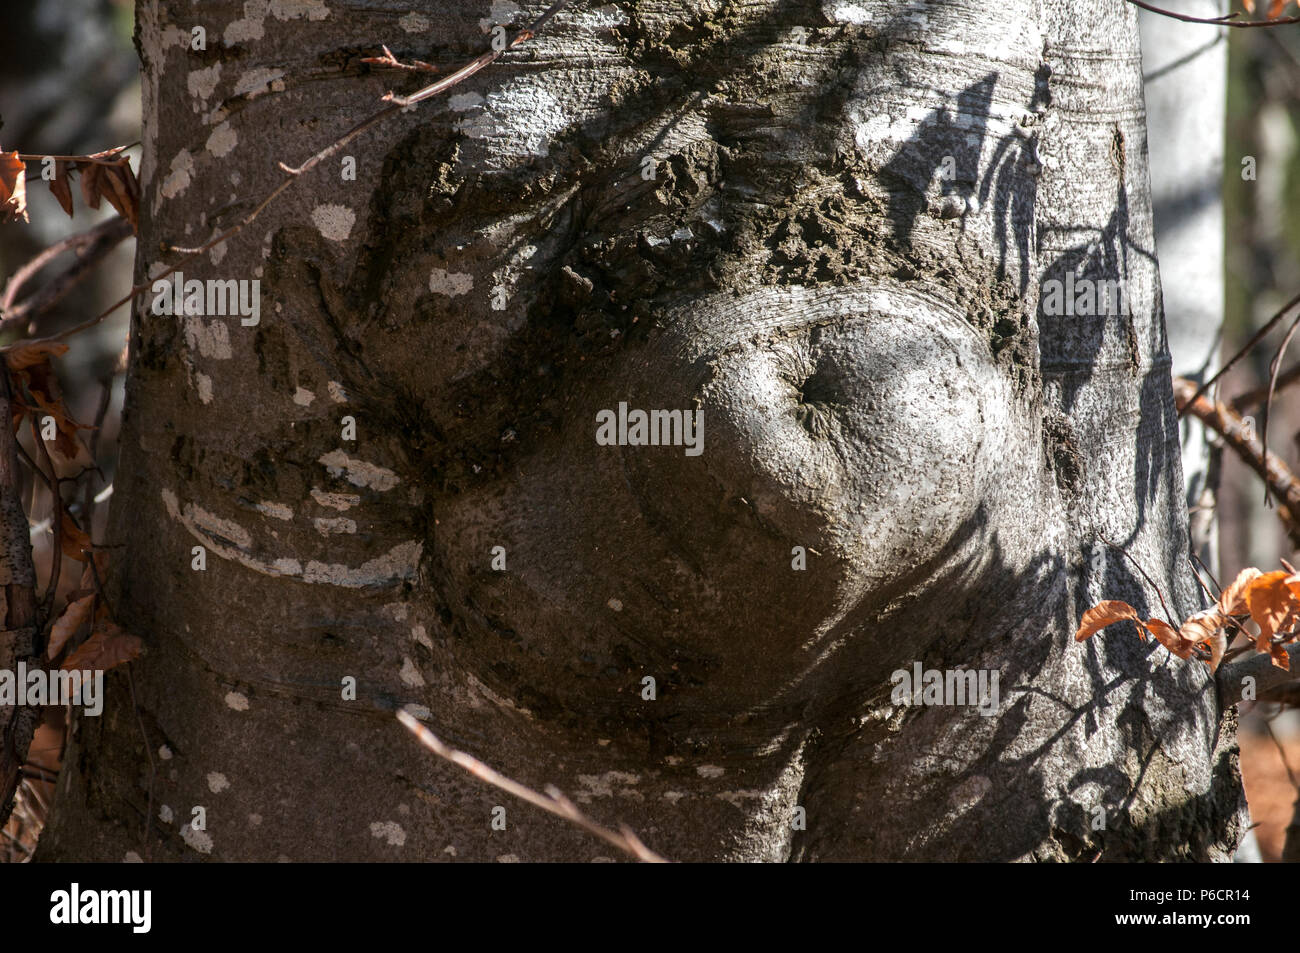 Trunk of beechwood bark closeup with a form resembling female belly with navel - Stock Image